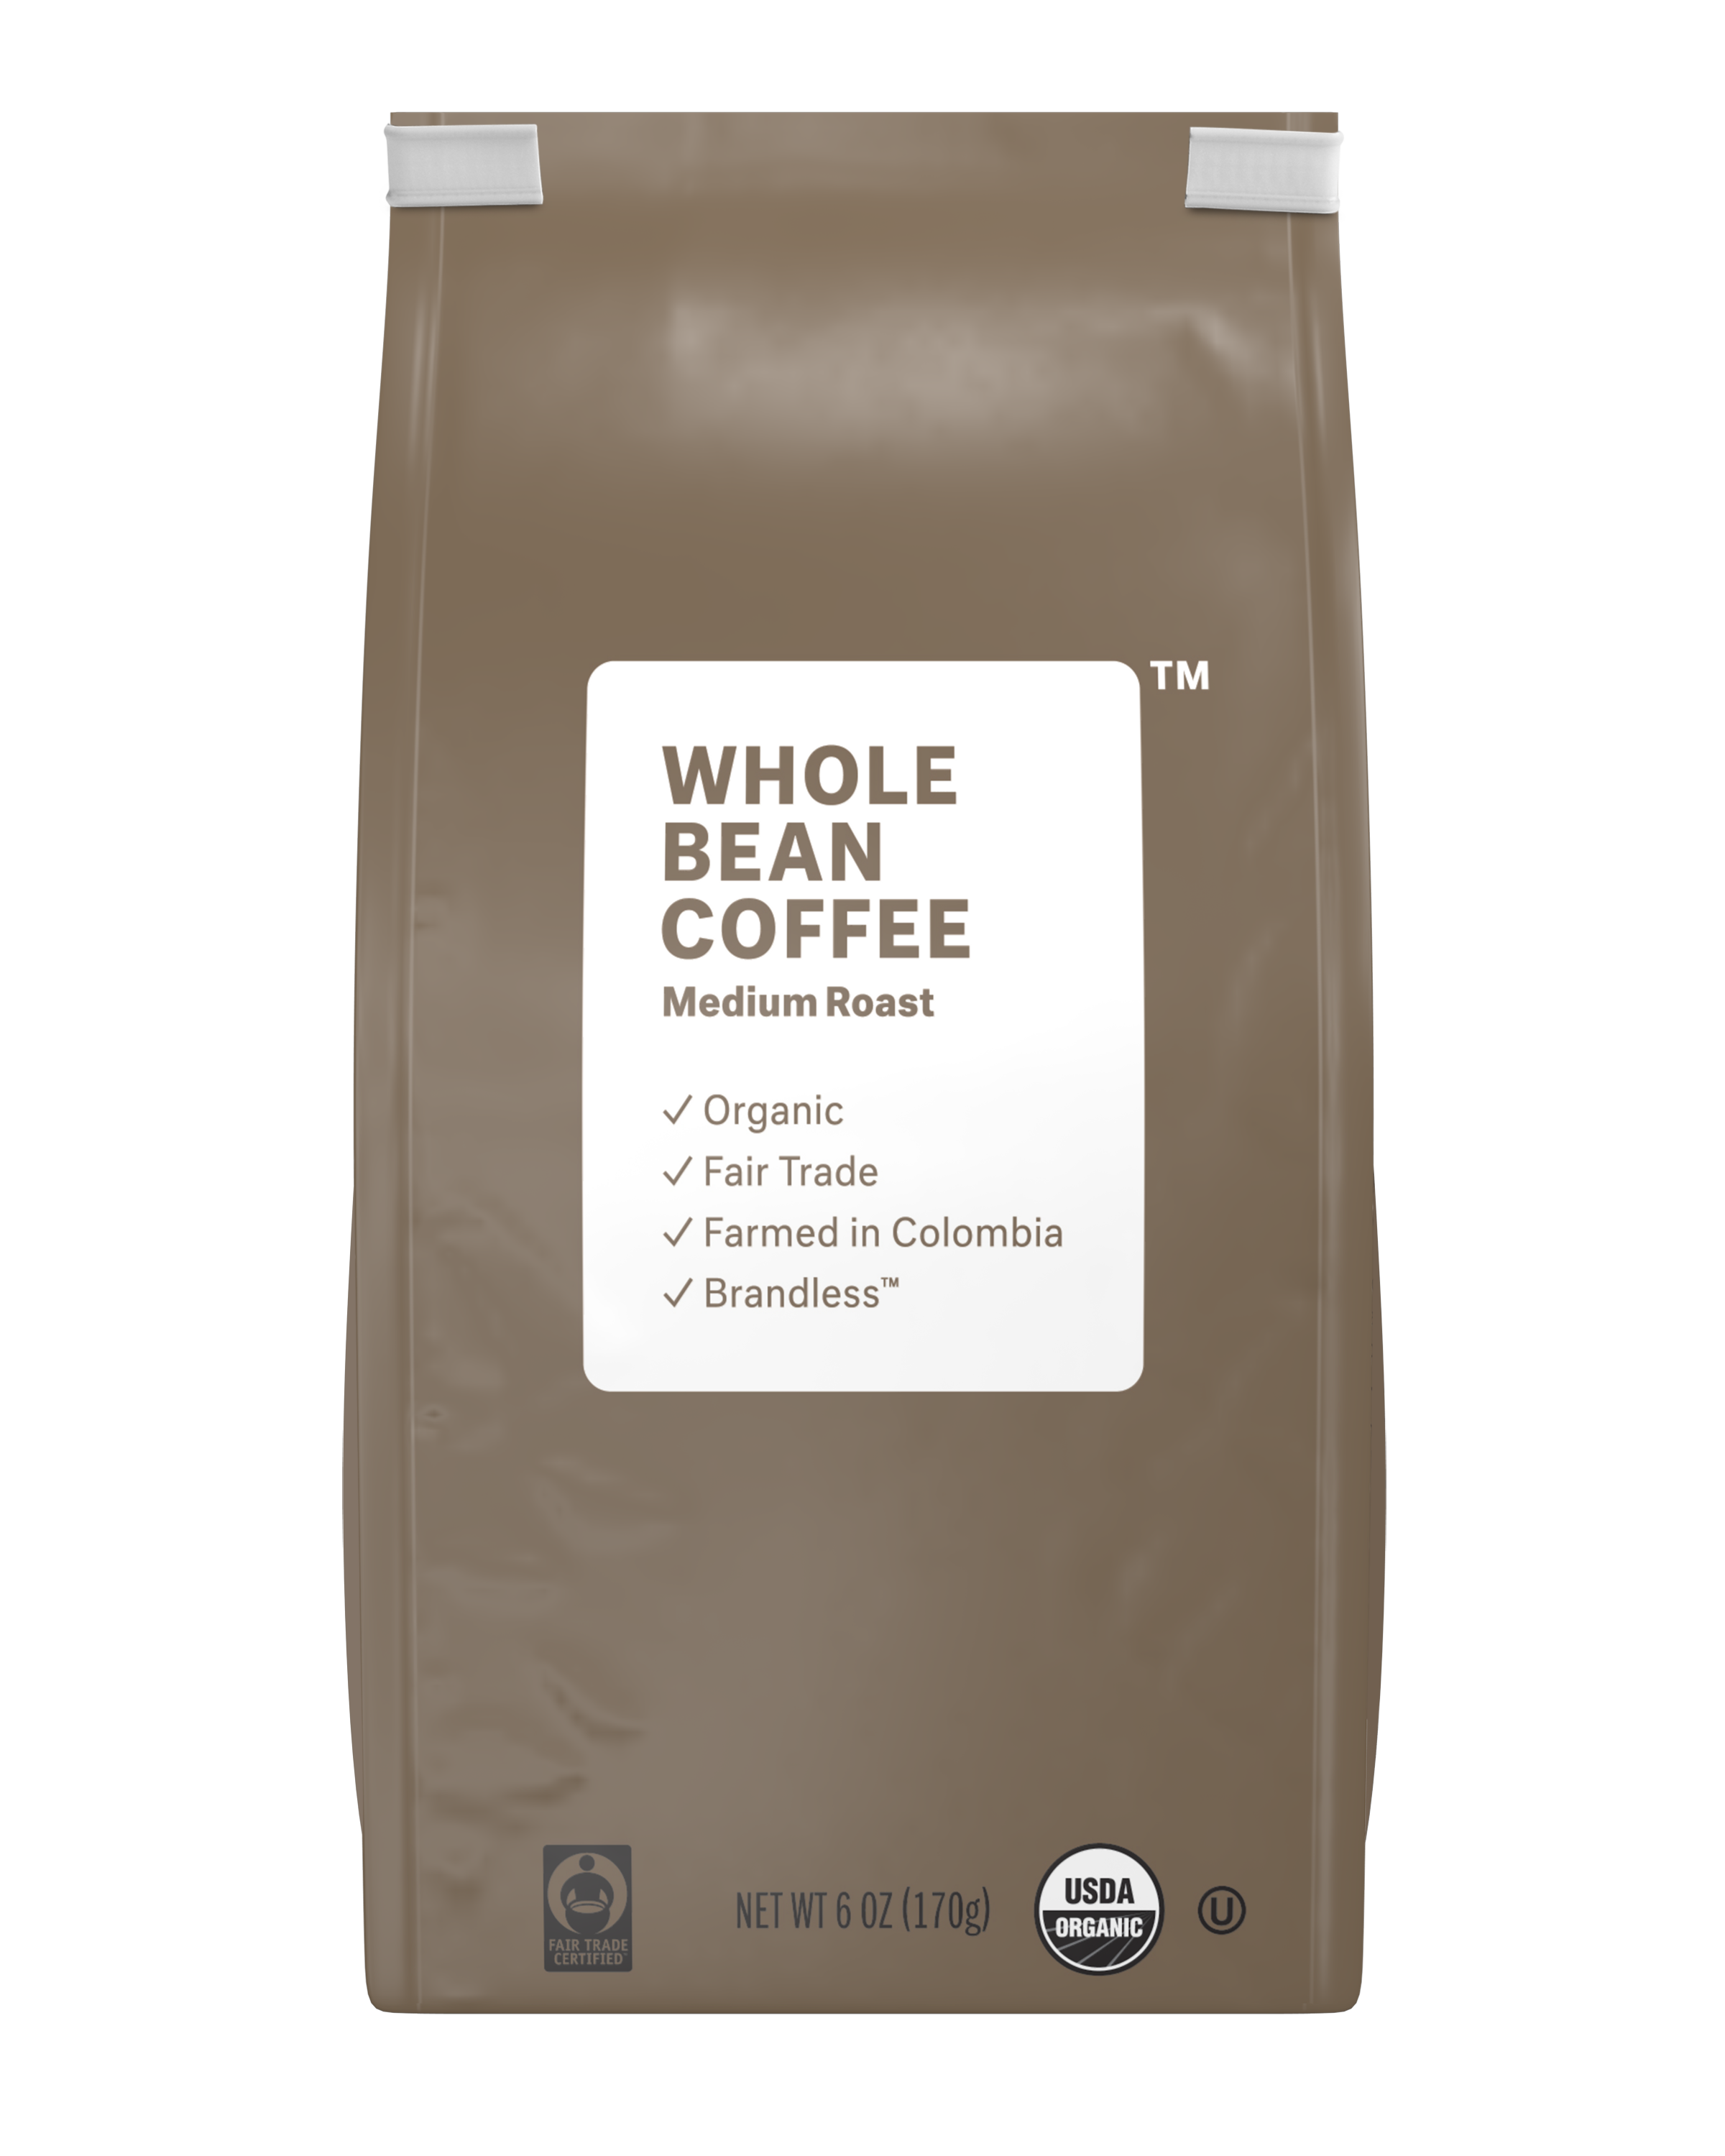 Brandless: Whole Bean Coffee, Medium Roast